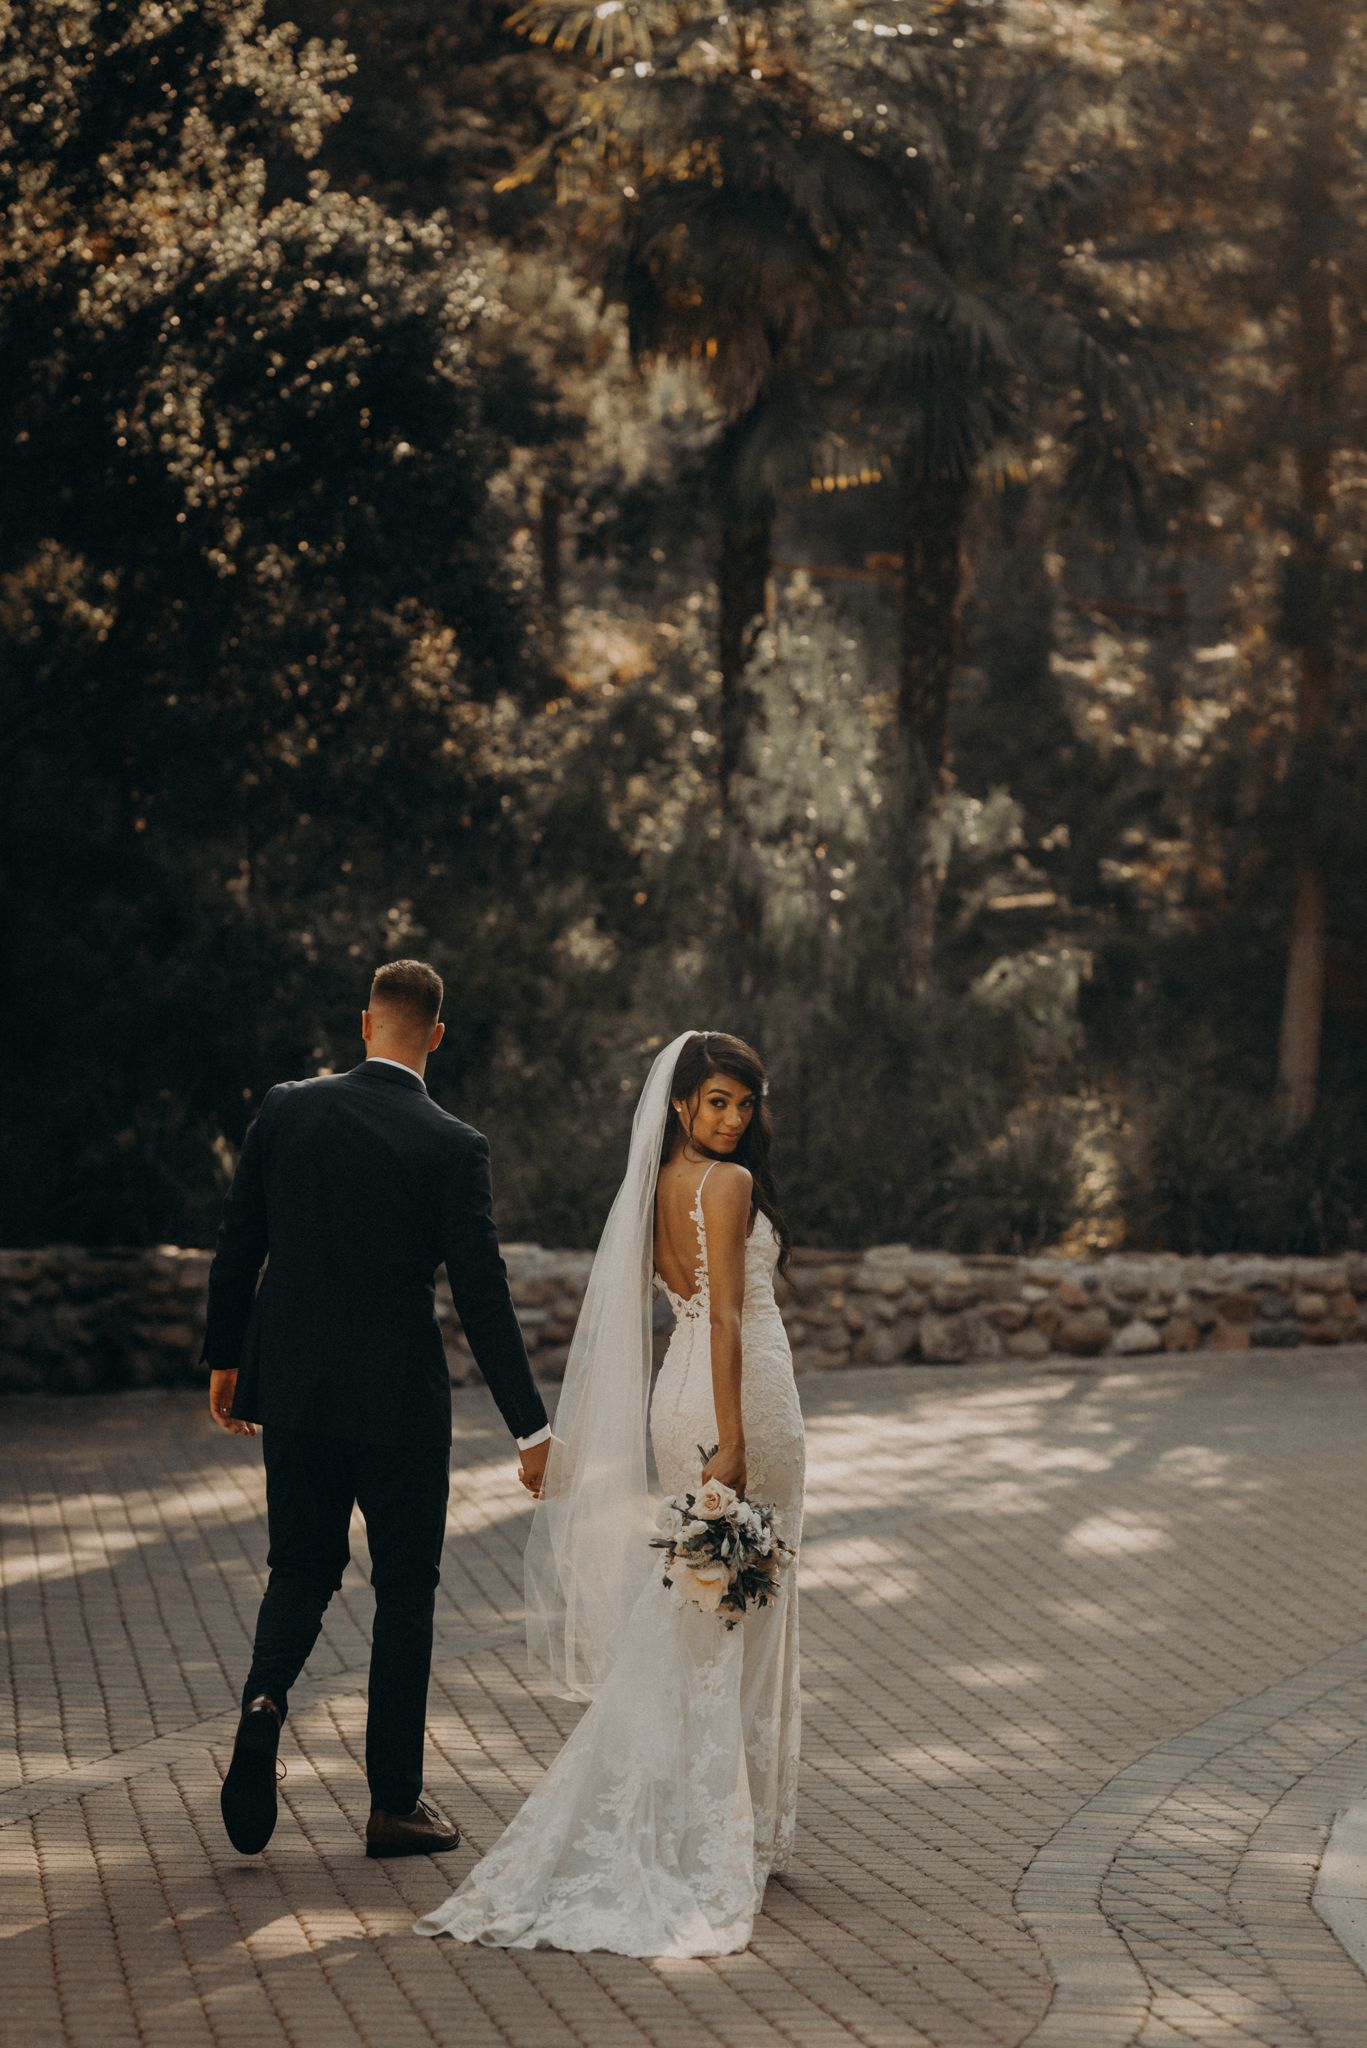 County Outdoor Nature Wedding Venue Ceremony And Reception Greenery All Inclusive Laid Back Summer Los Angeles Photographer